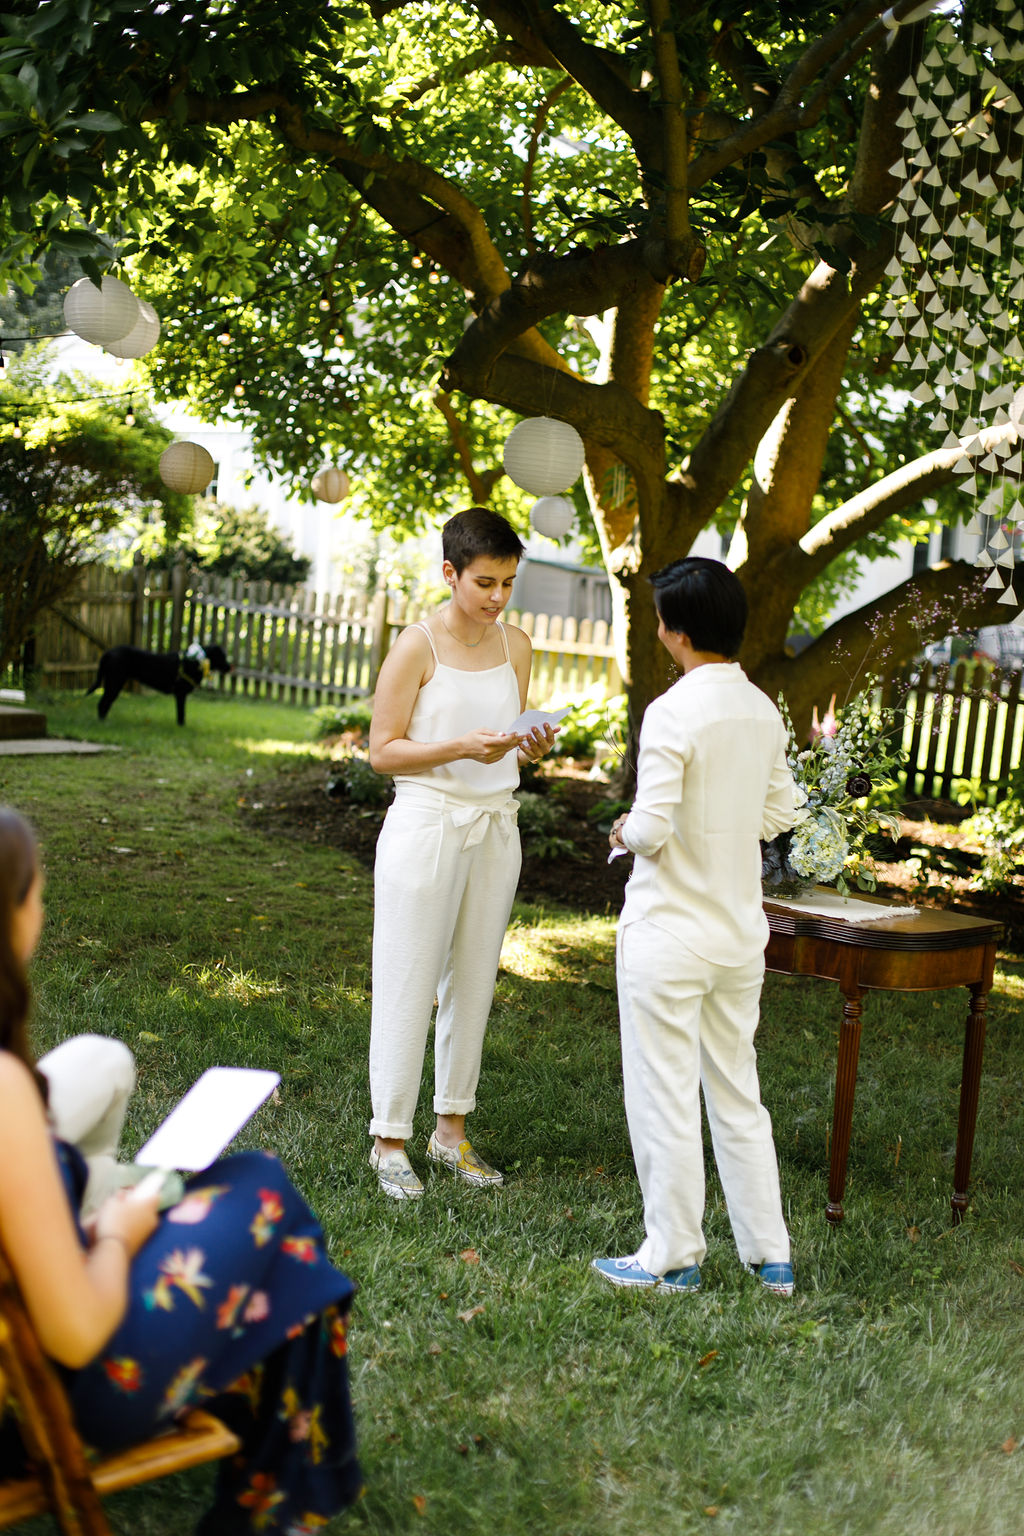 Philly Area Backyard LGBTQ Micro Wedding 28.jpg